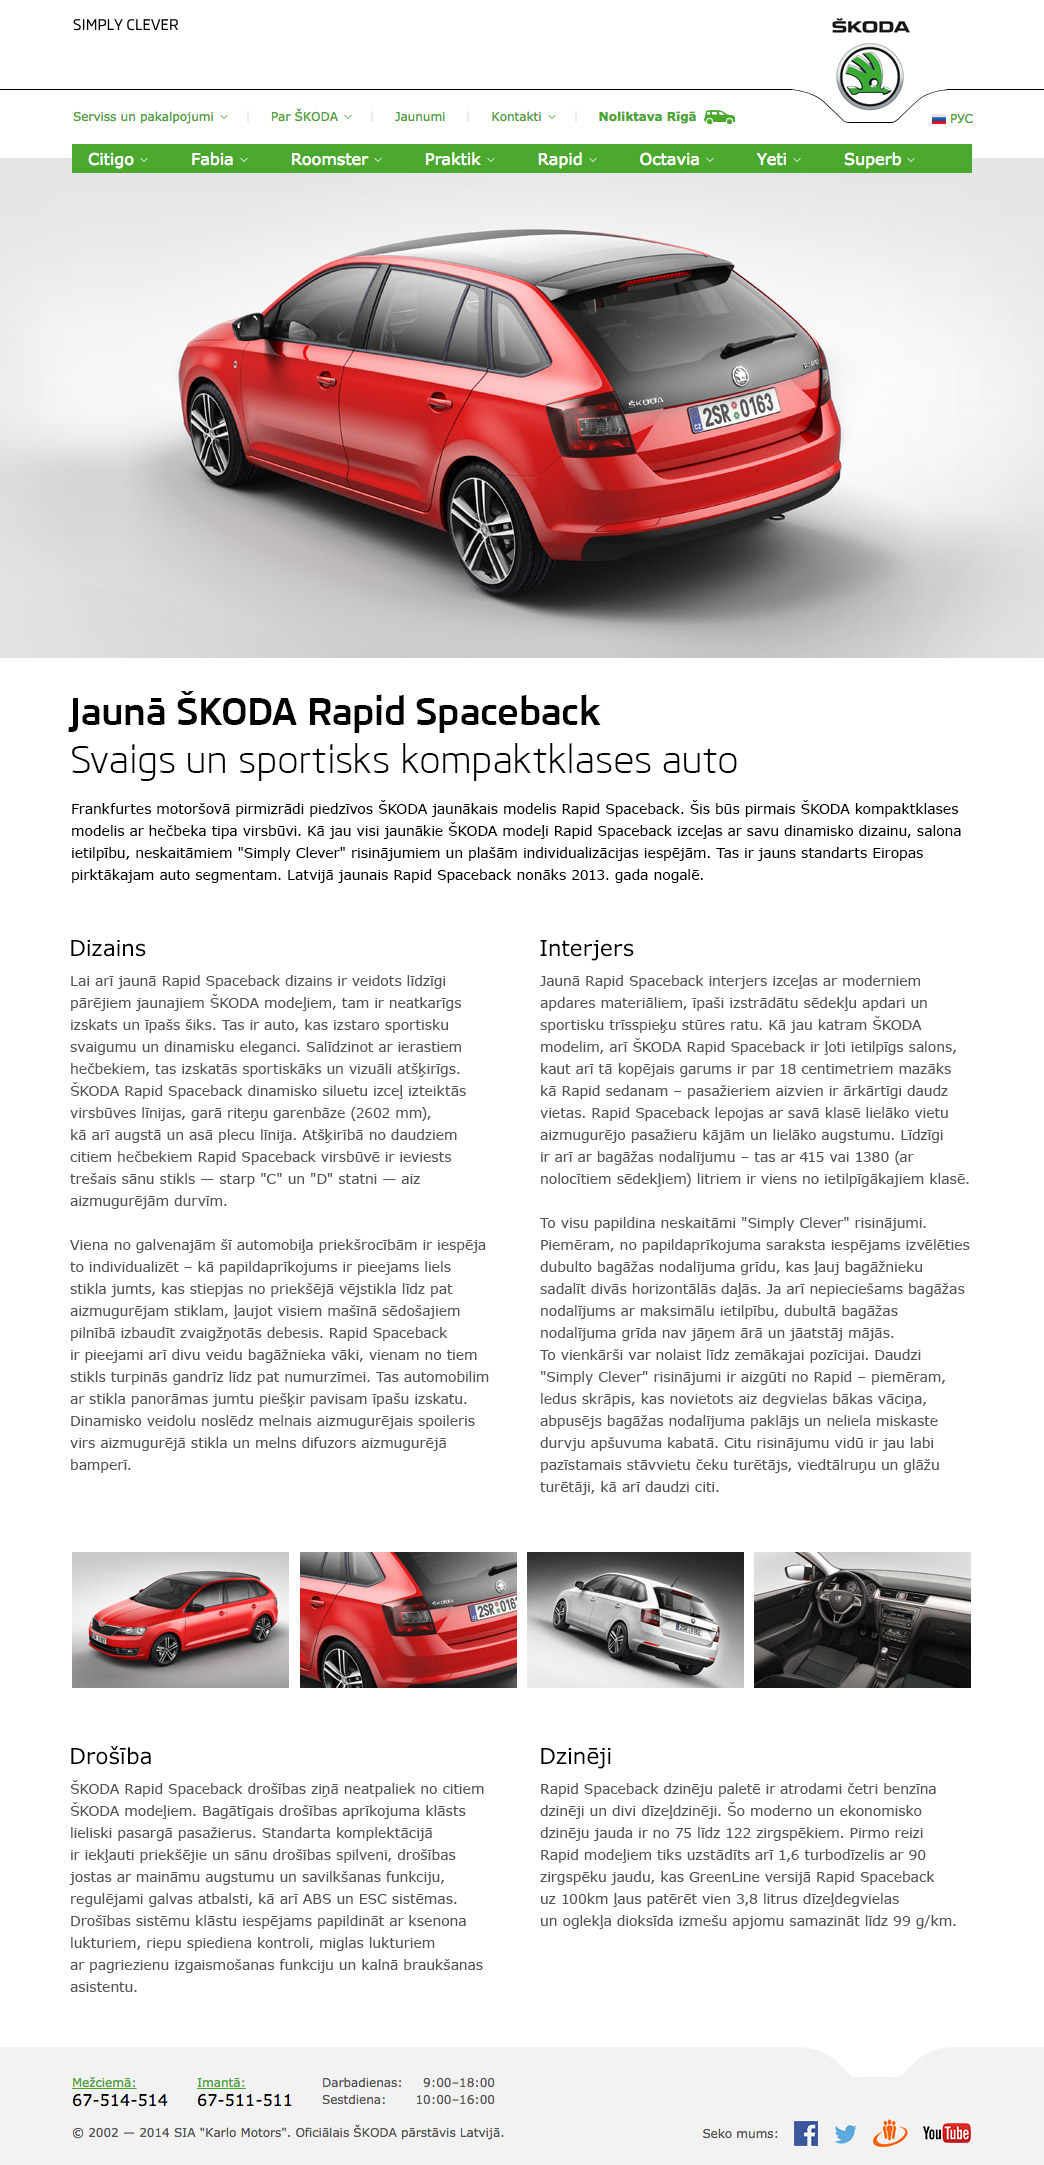 SKODA Rapid promo website